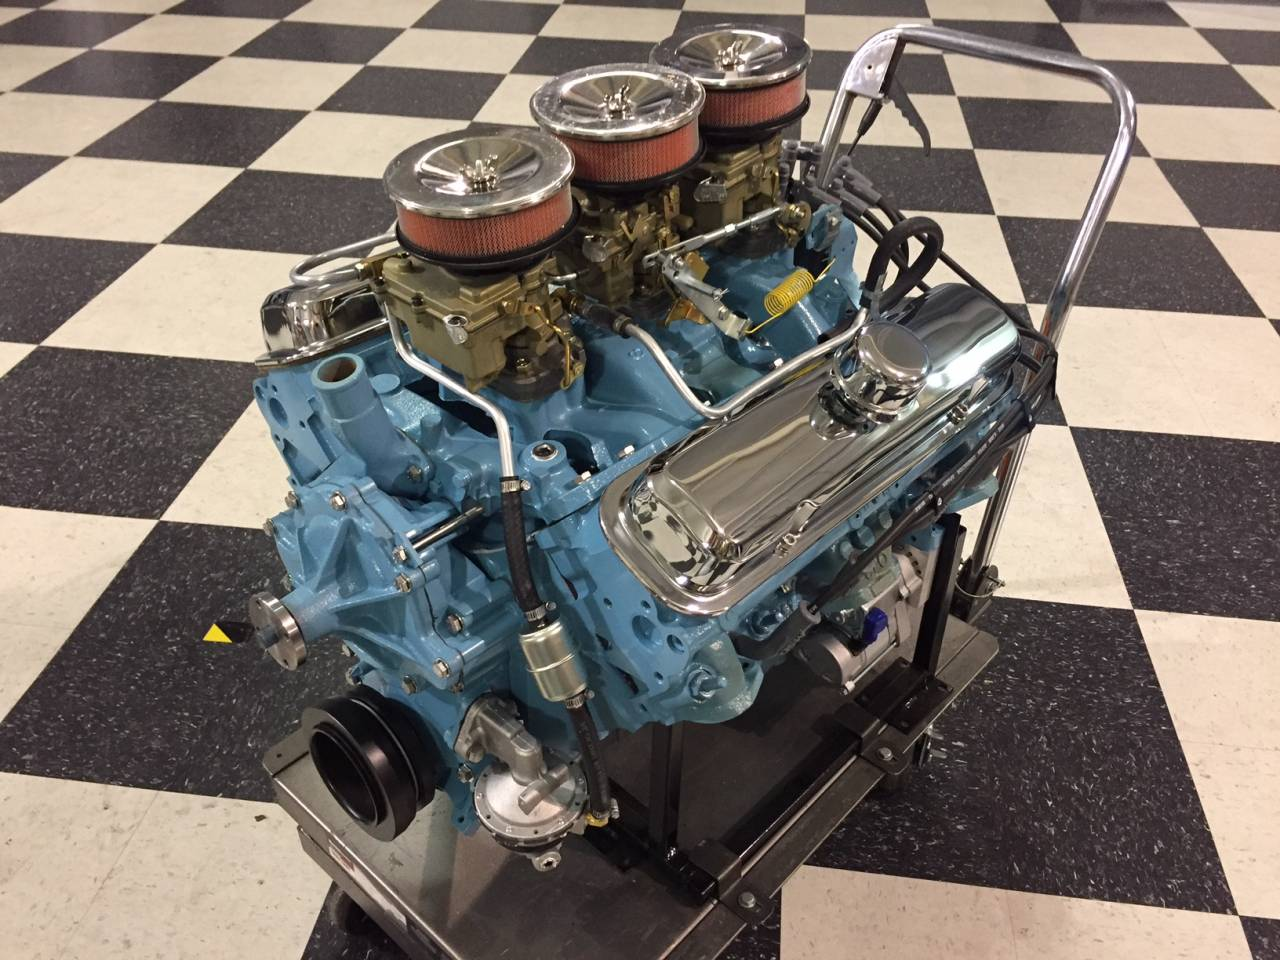 So here it is, a beautifully restored Pontiac Tri-Power that is leaps and  bounds above what came off the assembly line.